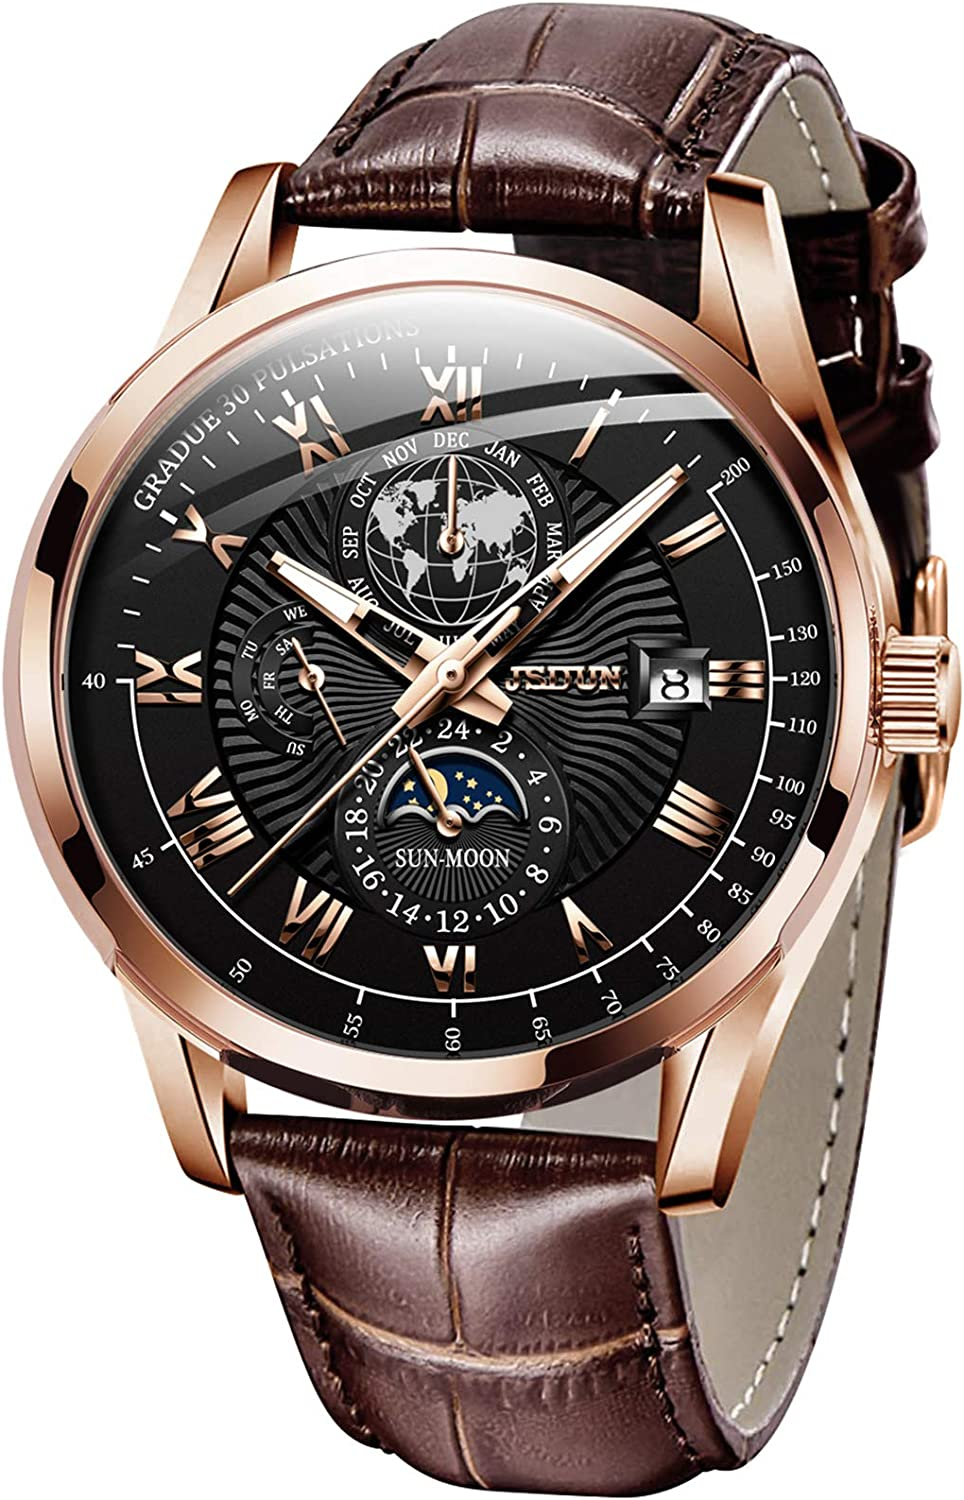 Automatic Watches for Men Self Winding Mechanical Leather Band Moon Phase 24 Hours Date Week Month Waterproof Luminous Wrist Watch